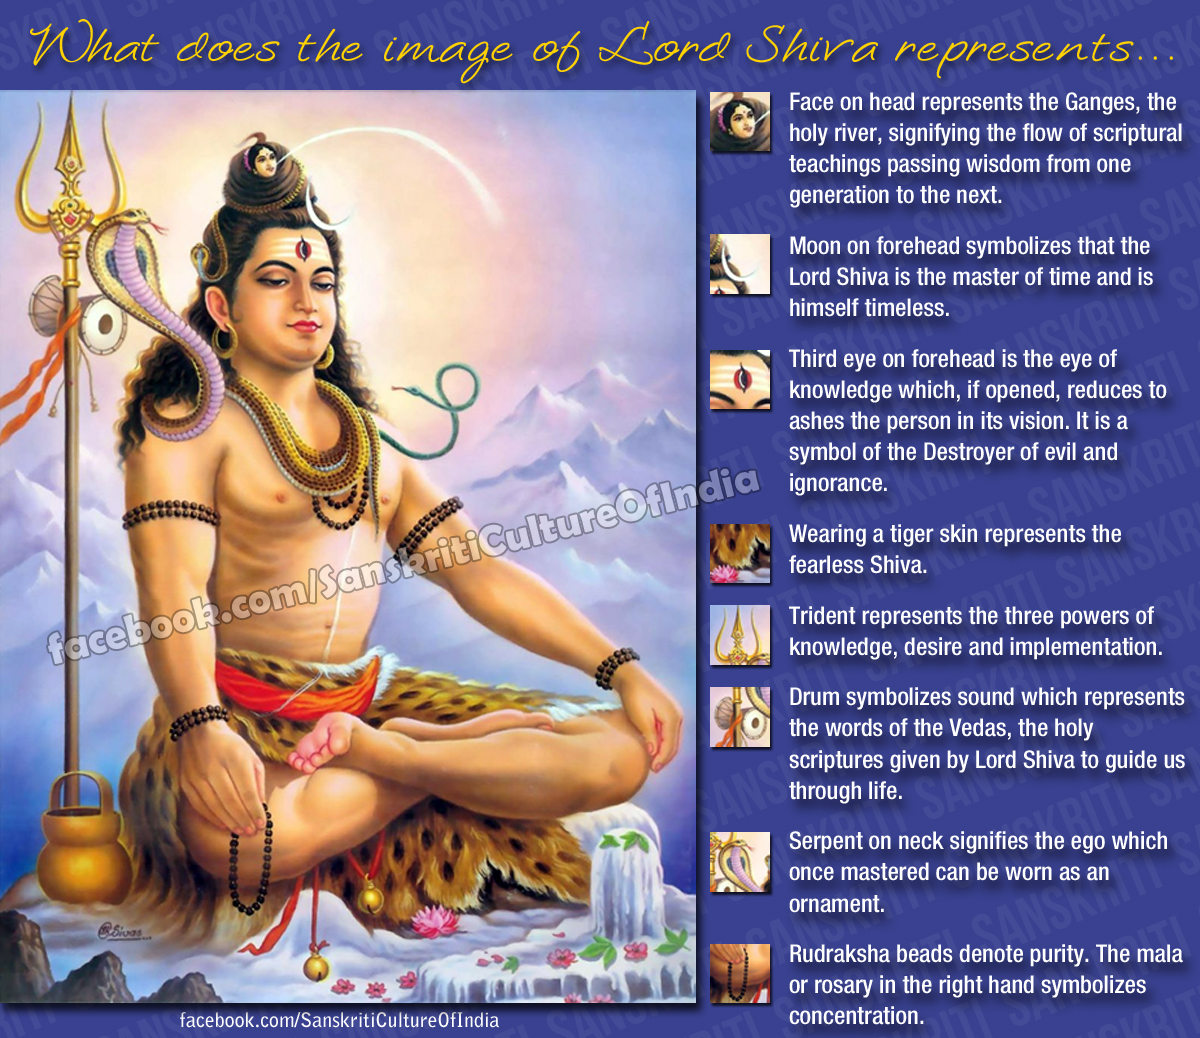 Lord Shiva explained